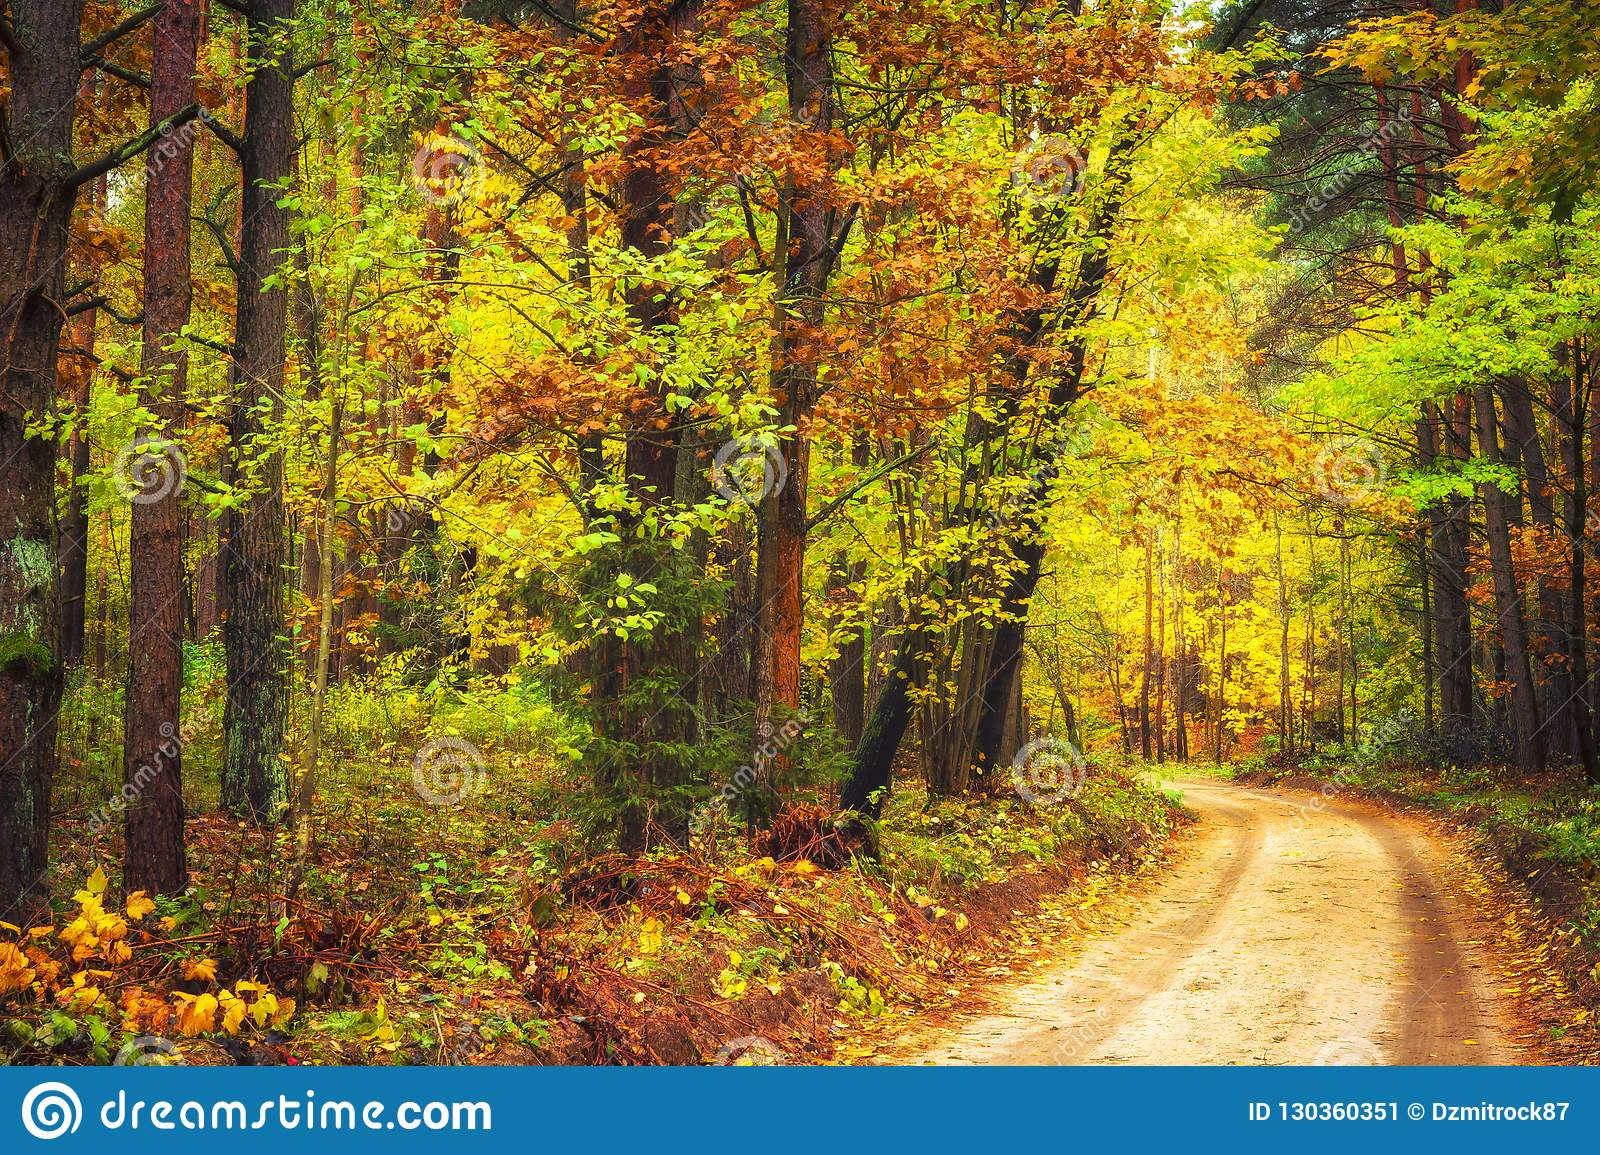 Autumn nature landscape. Colorful autumn forest with yellow trees along road. Path in woodland.